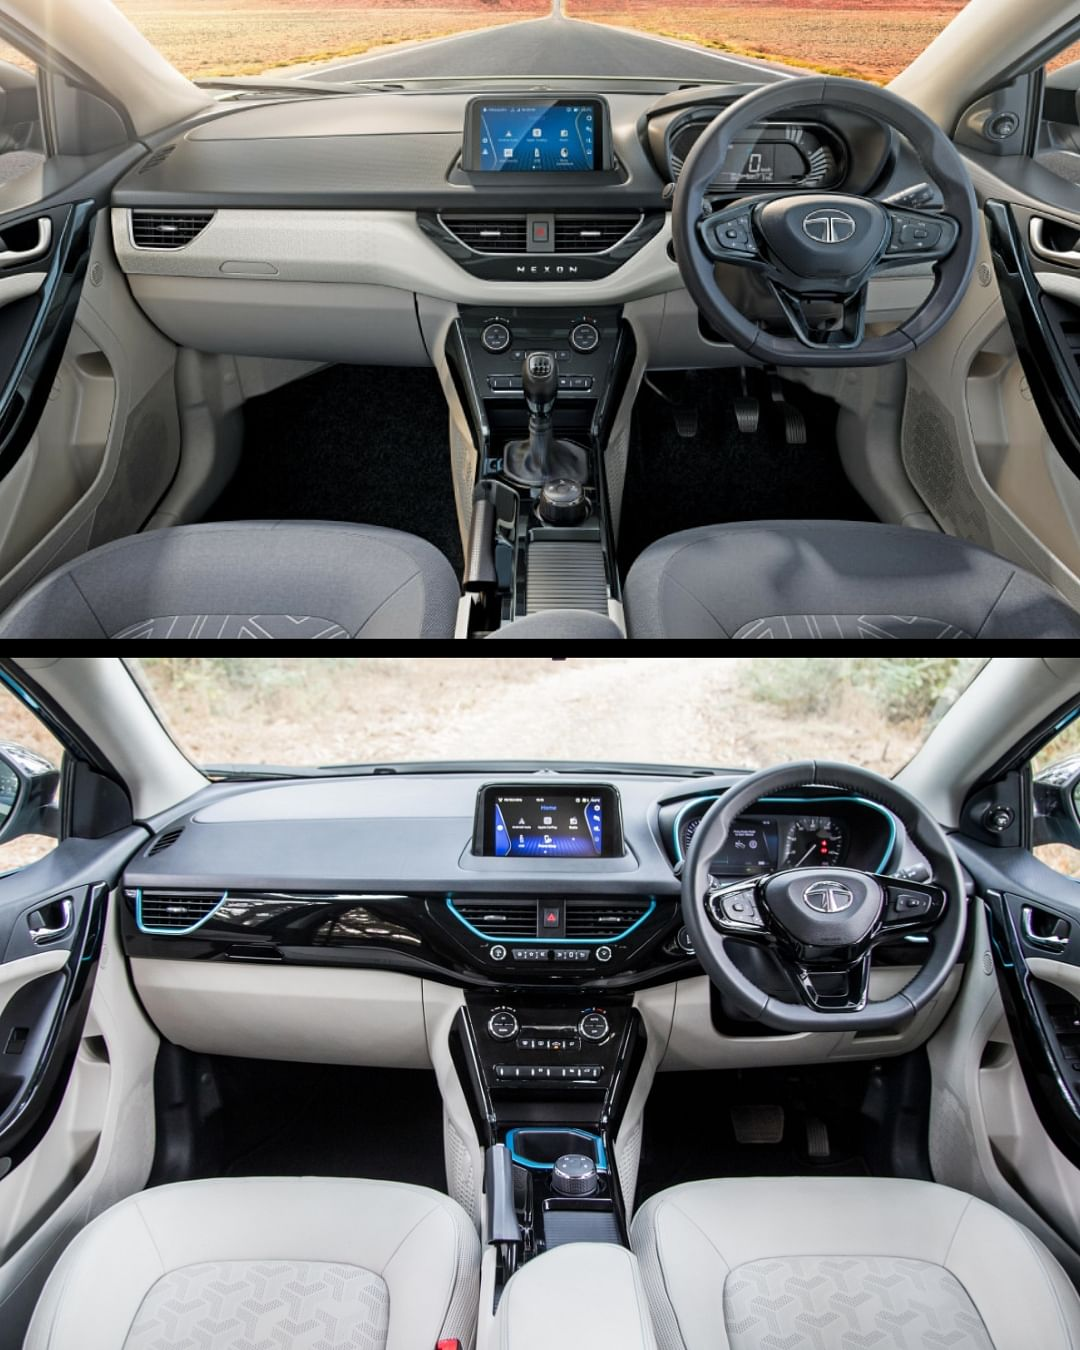 The layout is almost same with same features in both cars, except the absence of TPMS and Xpress cool feature in the EV